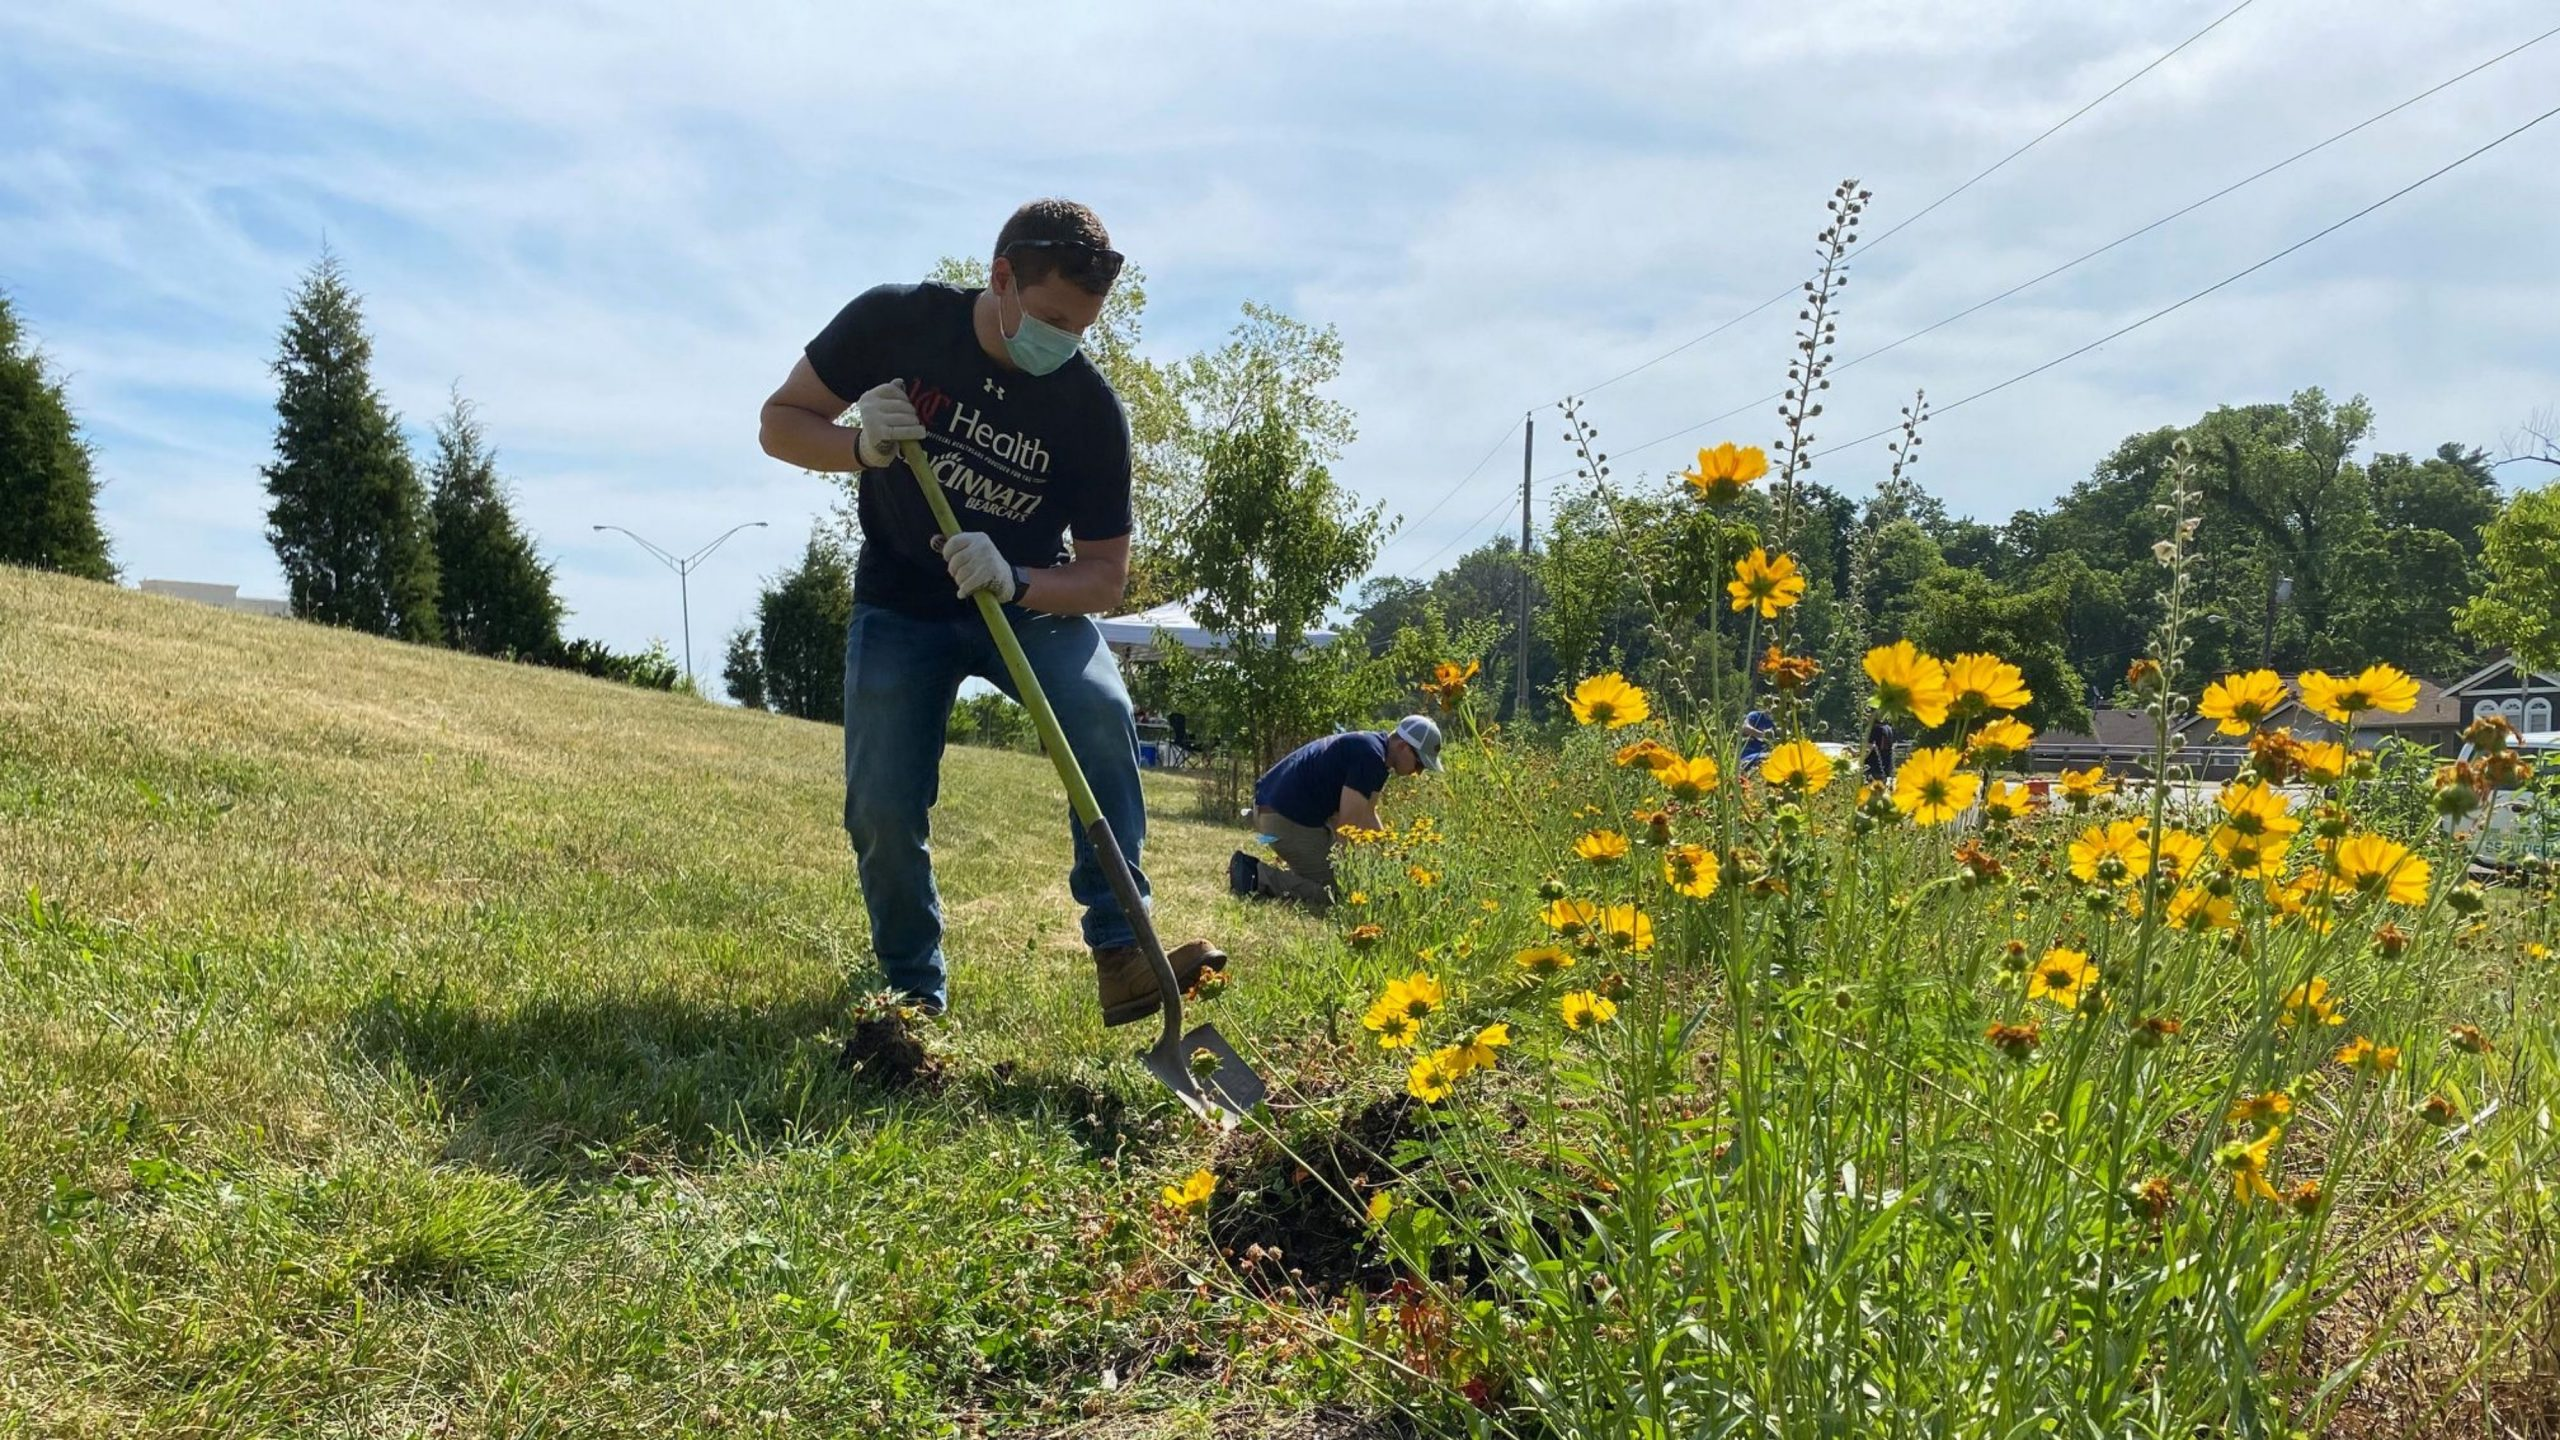 Anheuser-Busch Craft Breweries Partner with Keep America Beautiful on Community Cleanups and Restoration Projects Across the U.S.